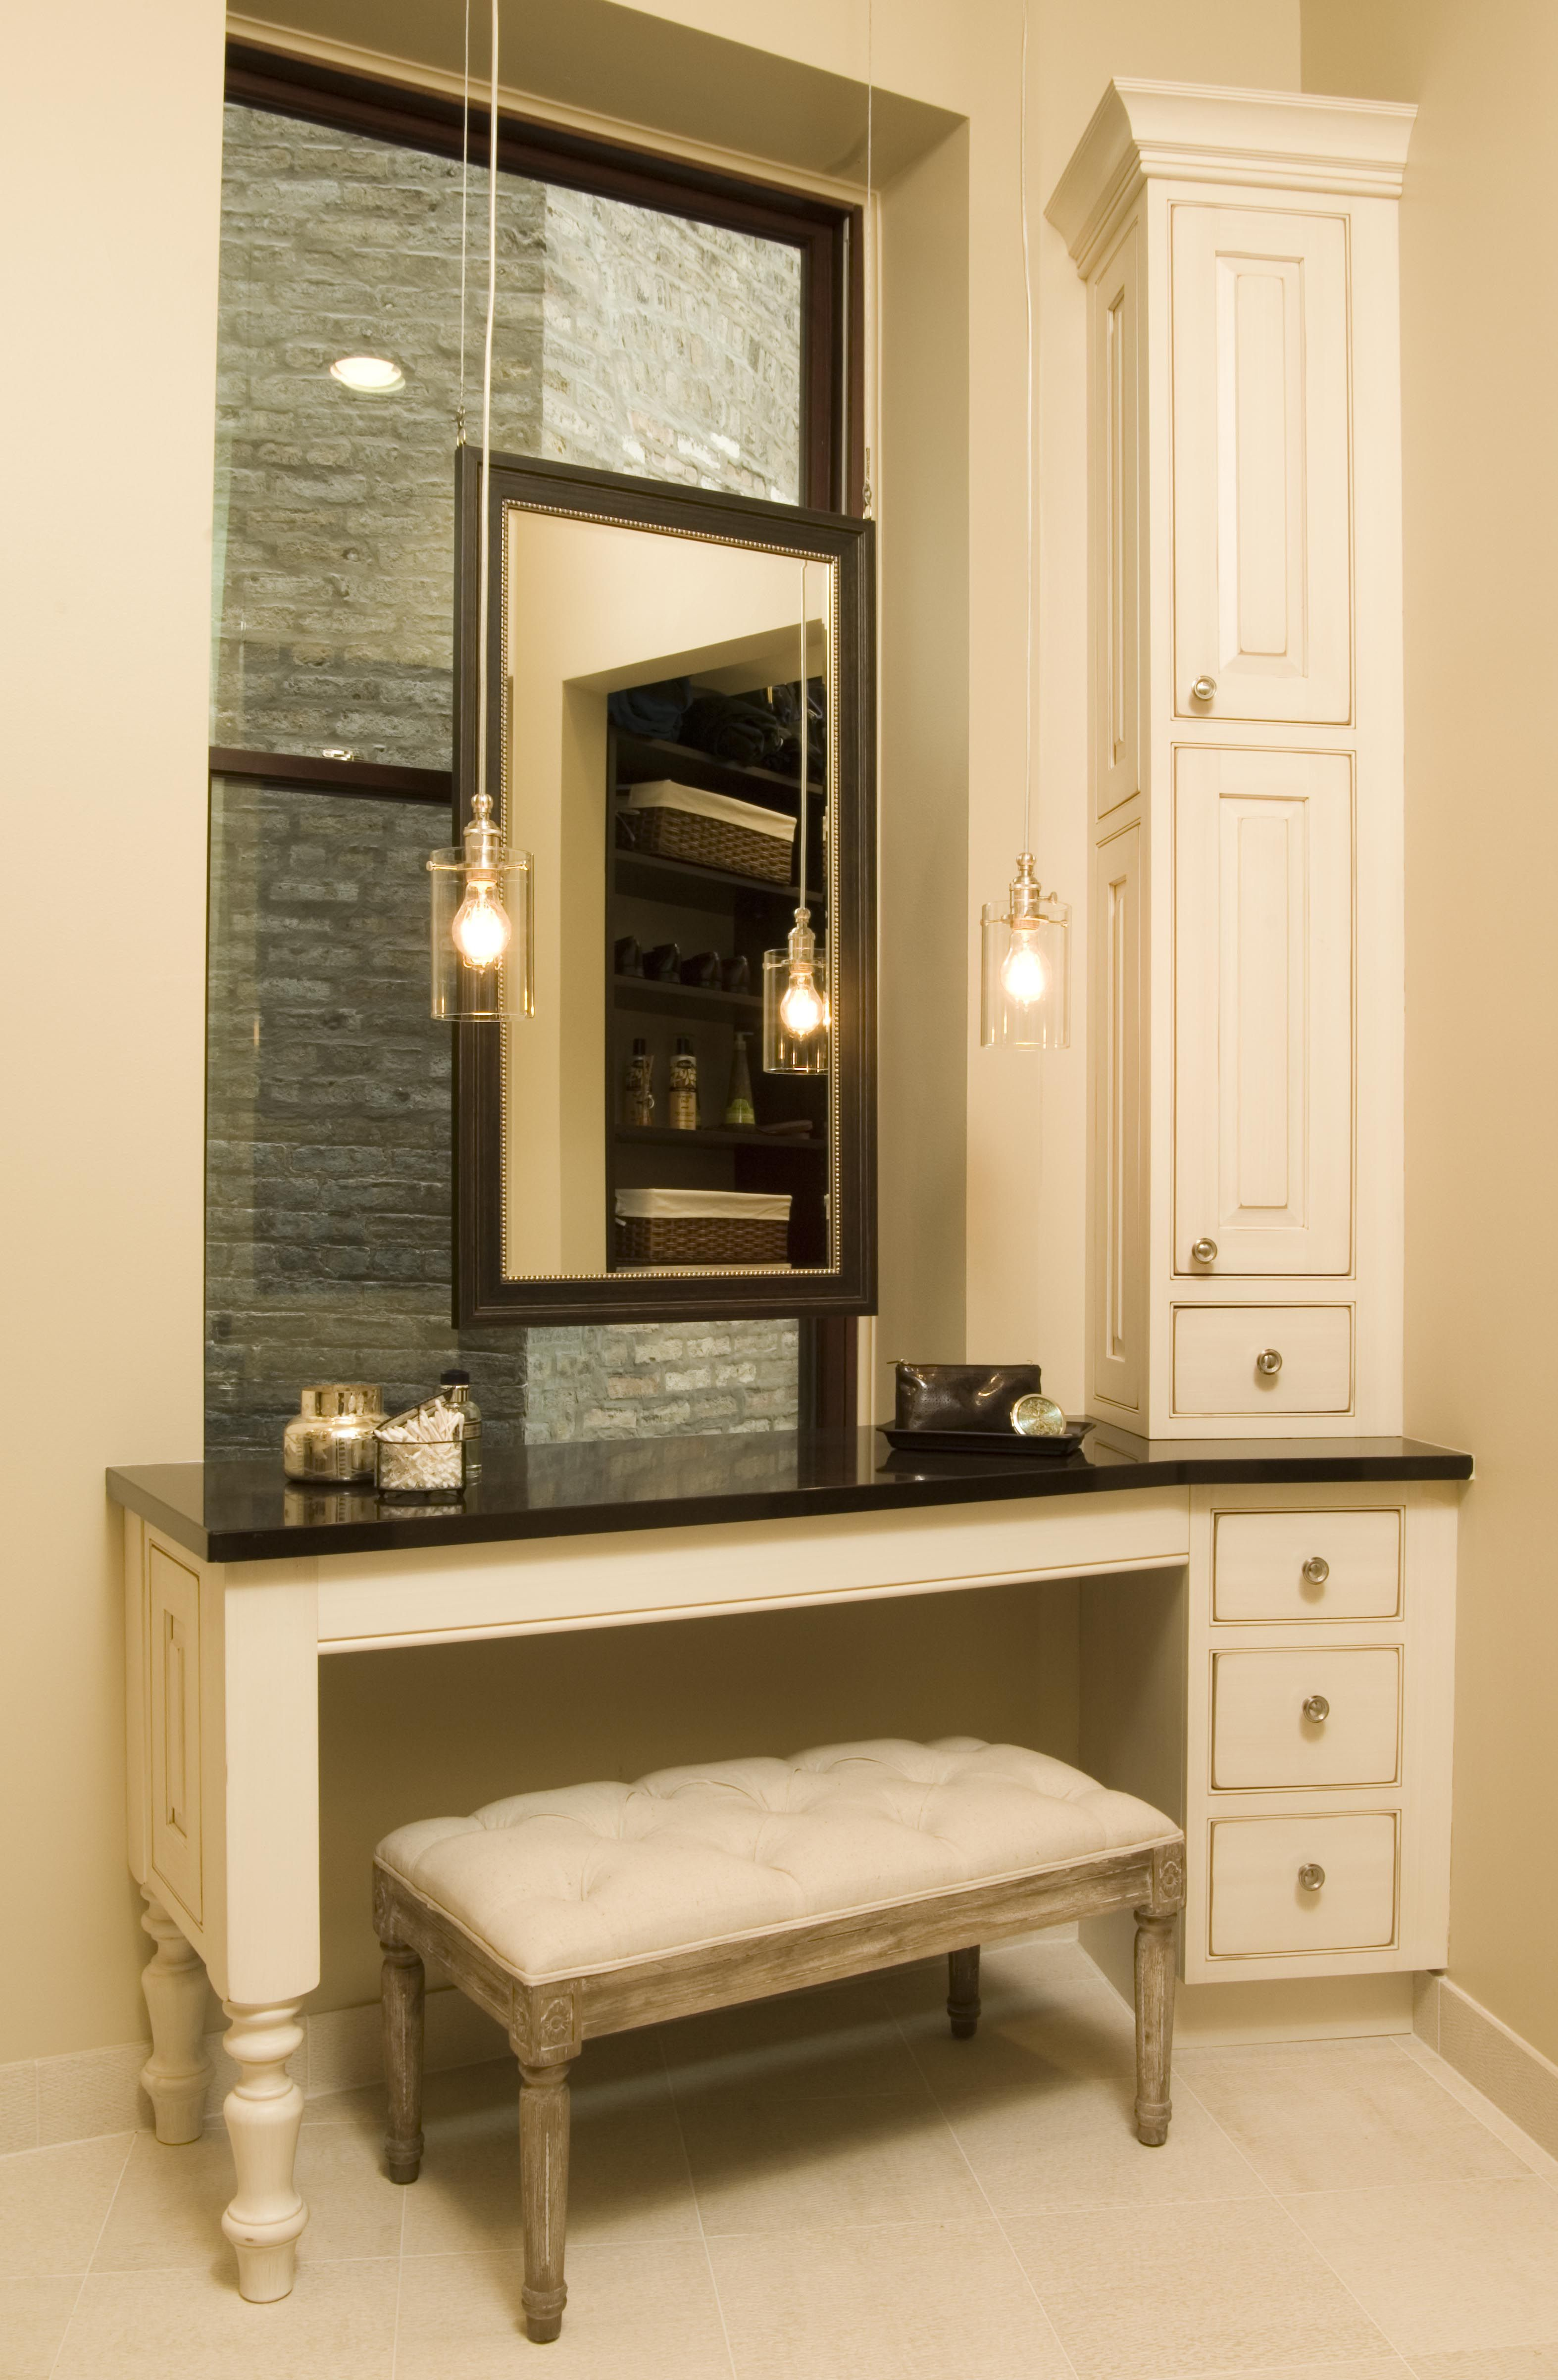 the wooden best in magnifying professional makeup also seen most glass bedroom furniture lighted lights combined desk swivel vanity sets chair vanities gallery magnificent images black with mirrors and top hollywood wheel mirror table stained